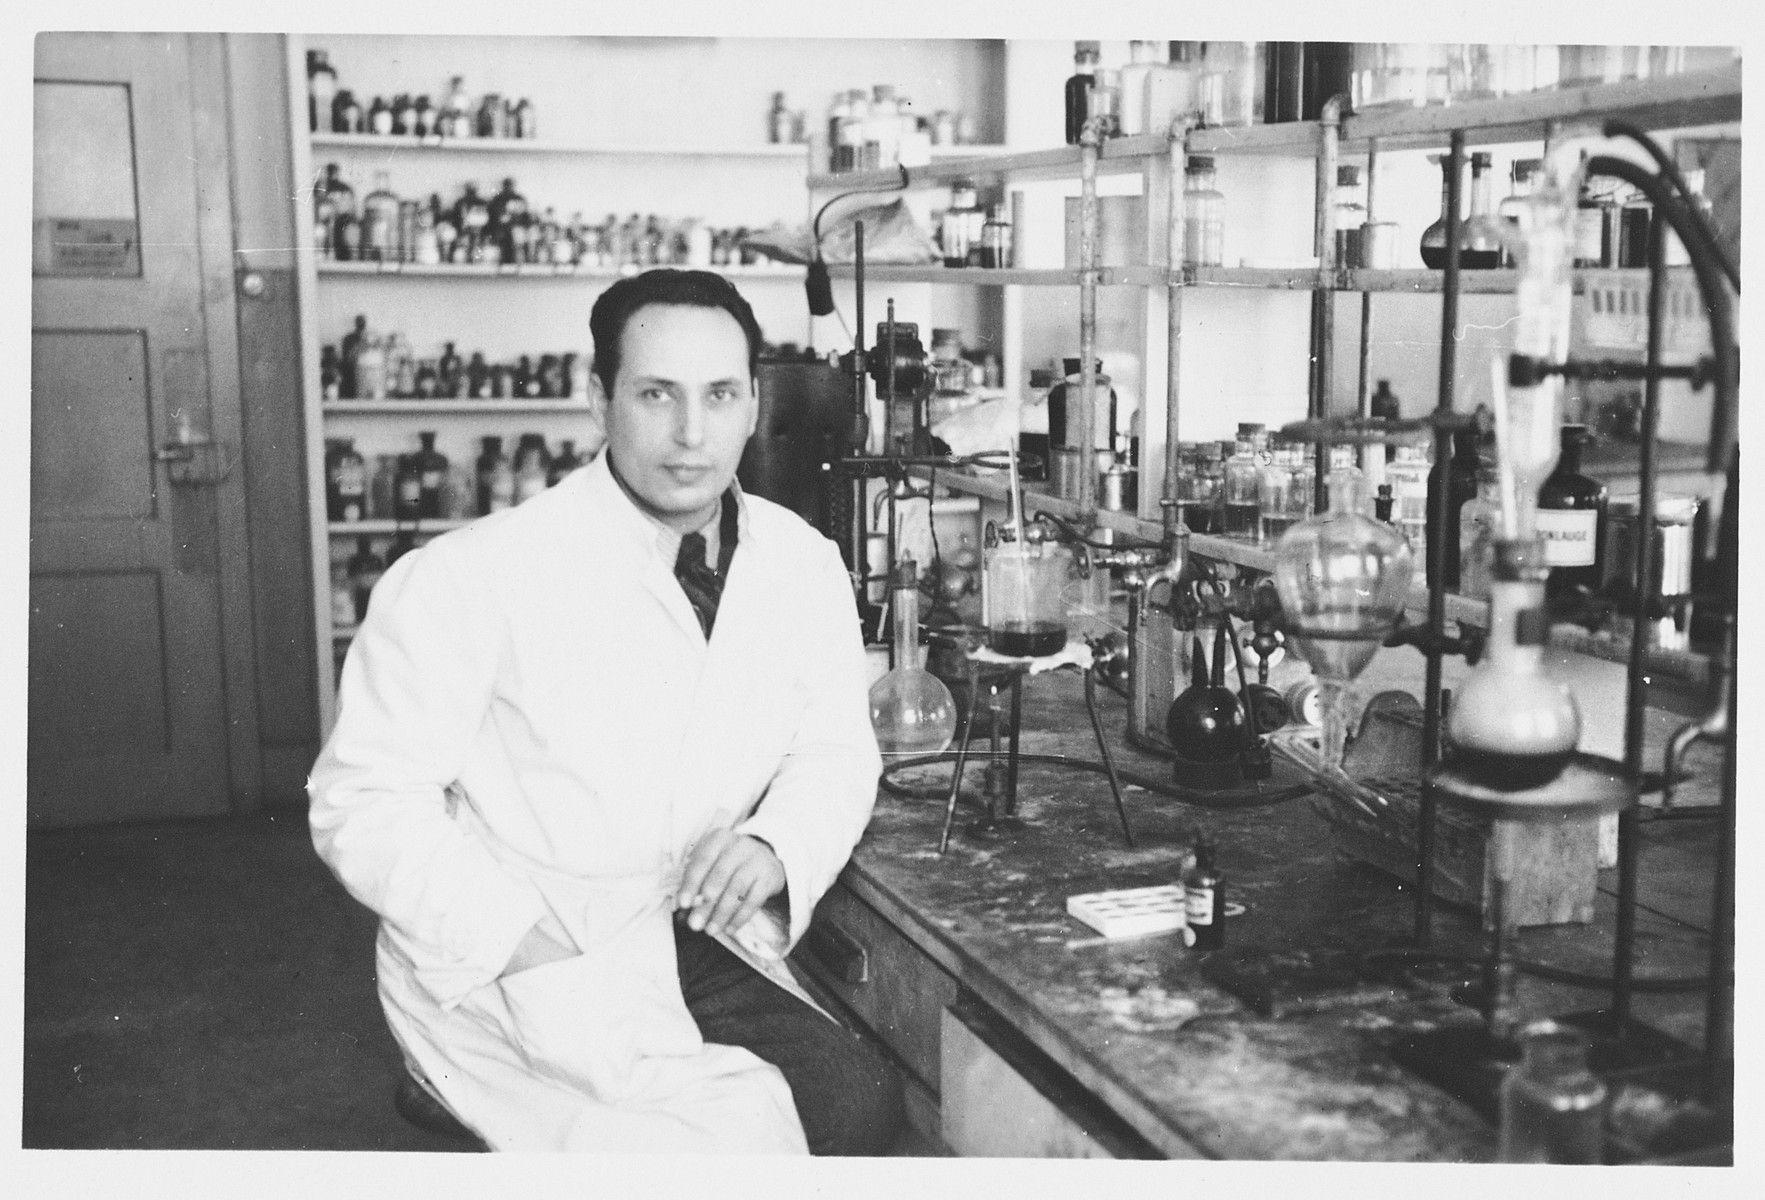 Edmund Dresner, a Jewish refugee, works in a chemical laboratory after escaping to Switzerland.